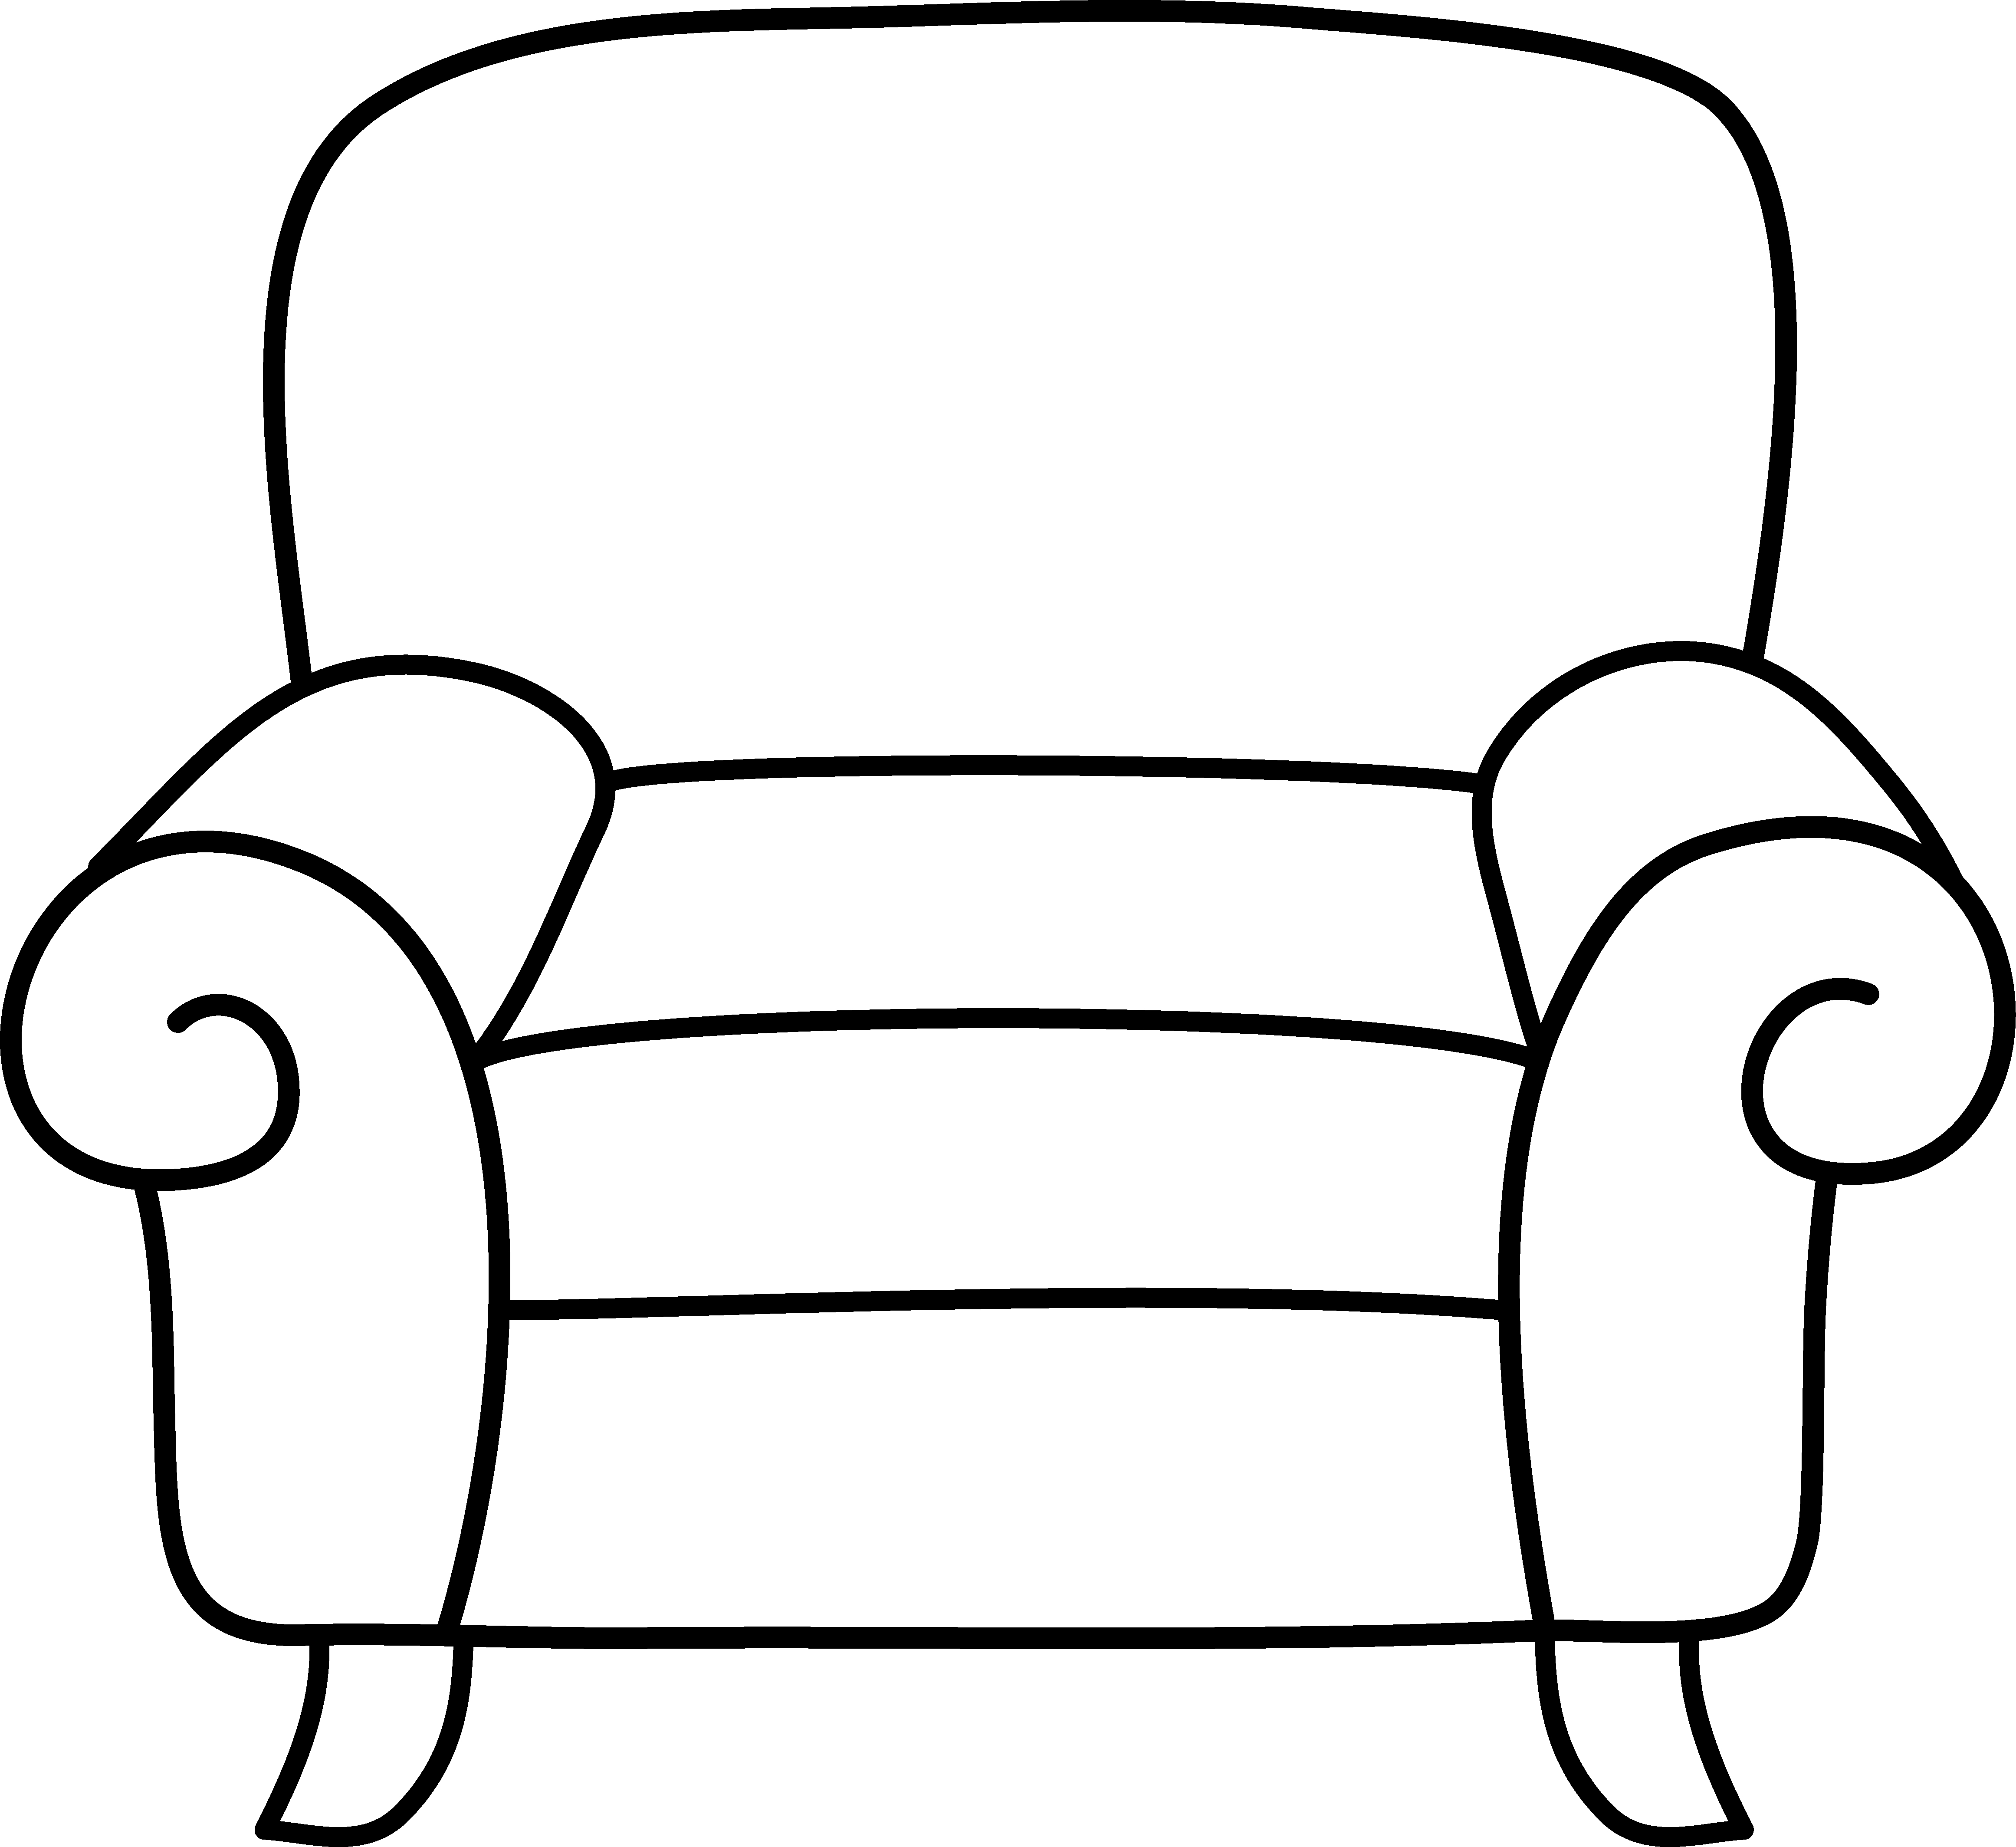 Couch Clipart Lounge Chair Couch Lounge Chair Transparent Free For